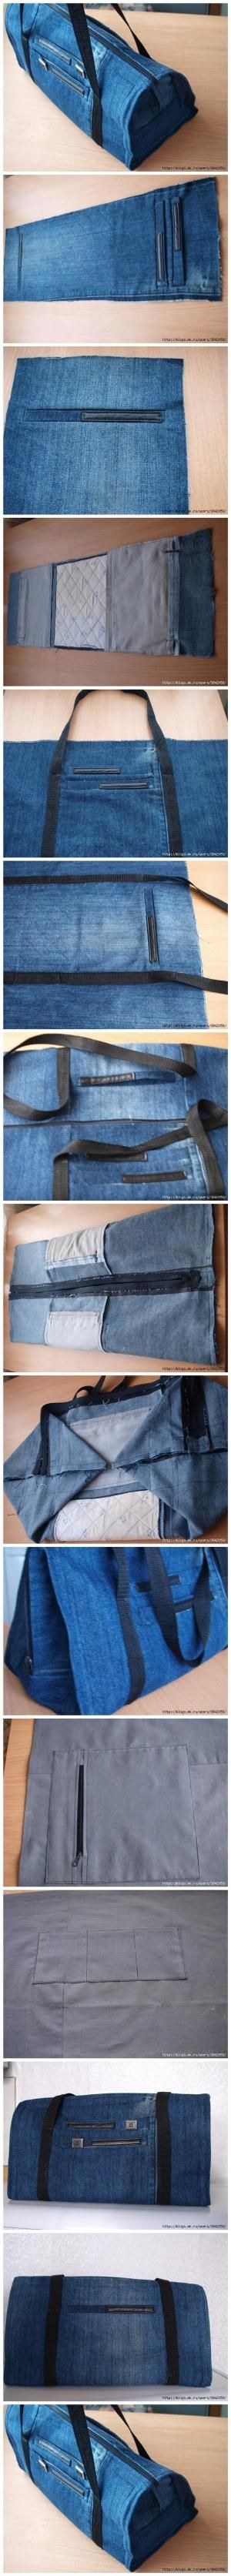 How to sew DIY handbags with recycled jeans step by step tutorial instructions…